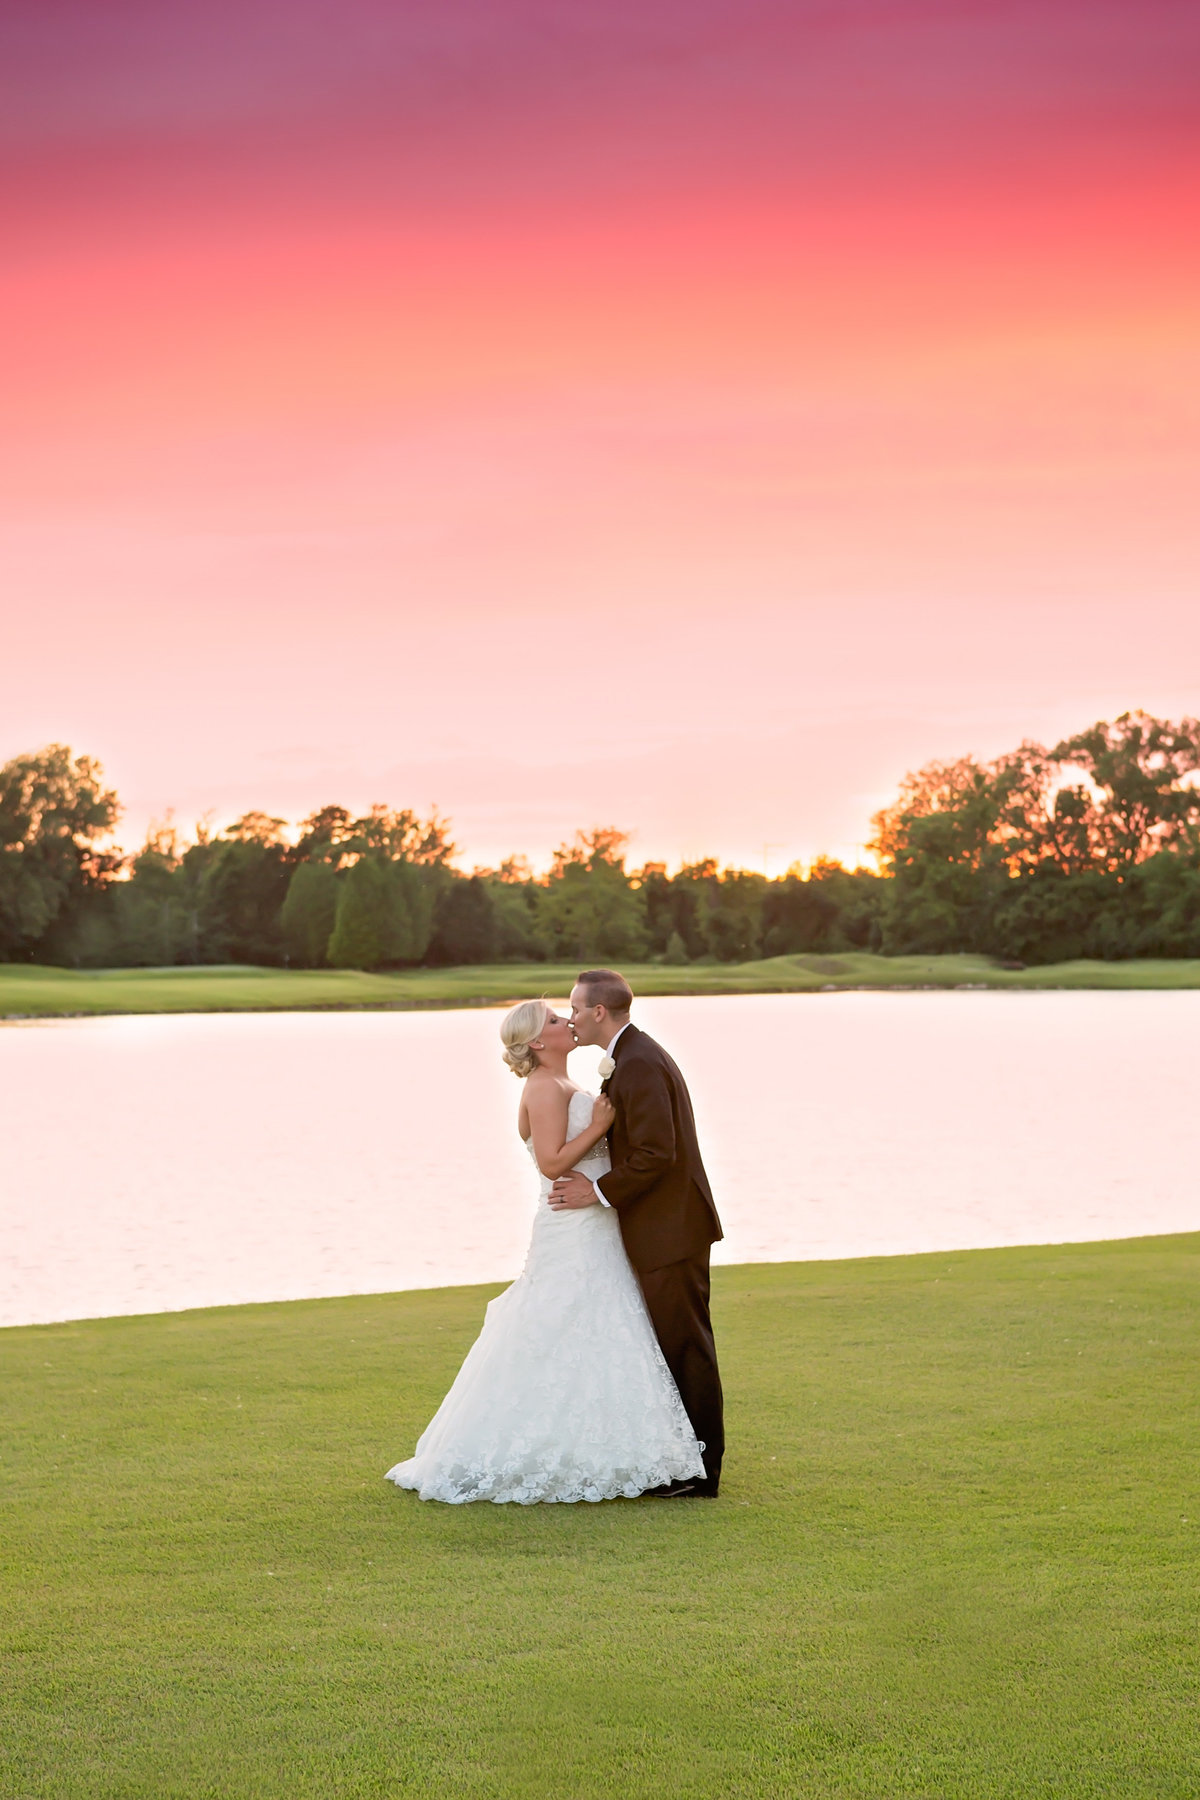 Weddings - Holly Dawn Photography - Wedding Photography - Family Photography - St. Charles - St. Louis - Missouri -115